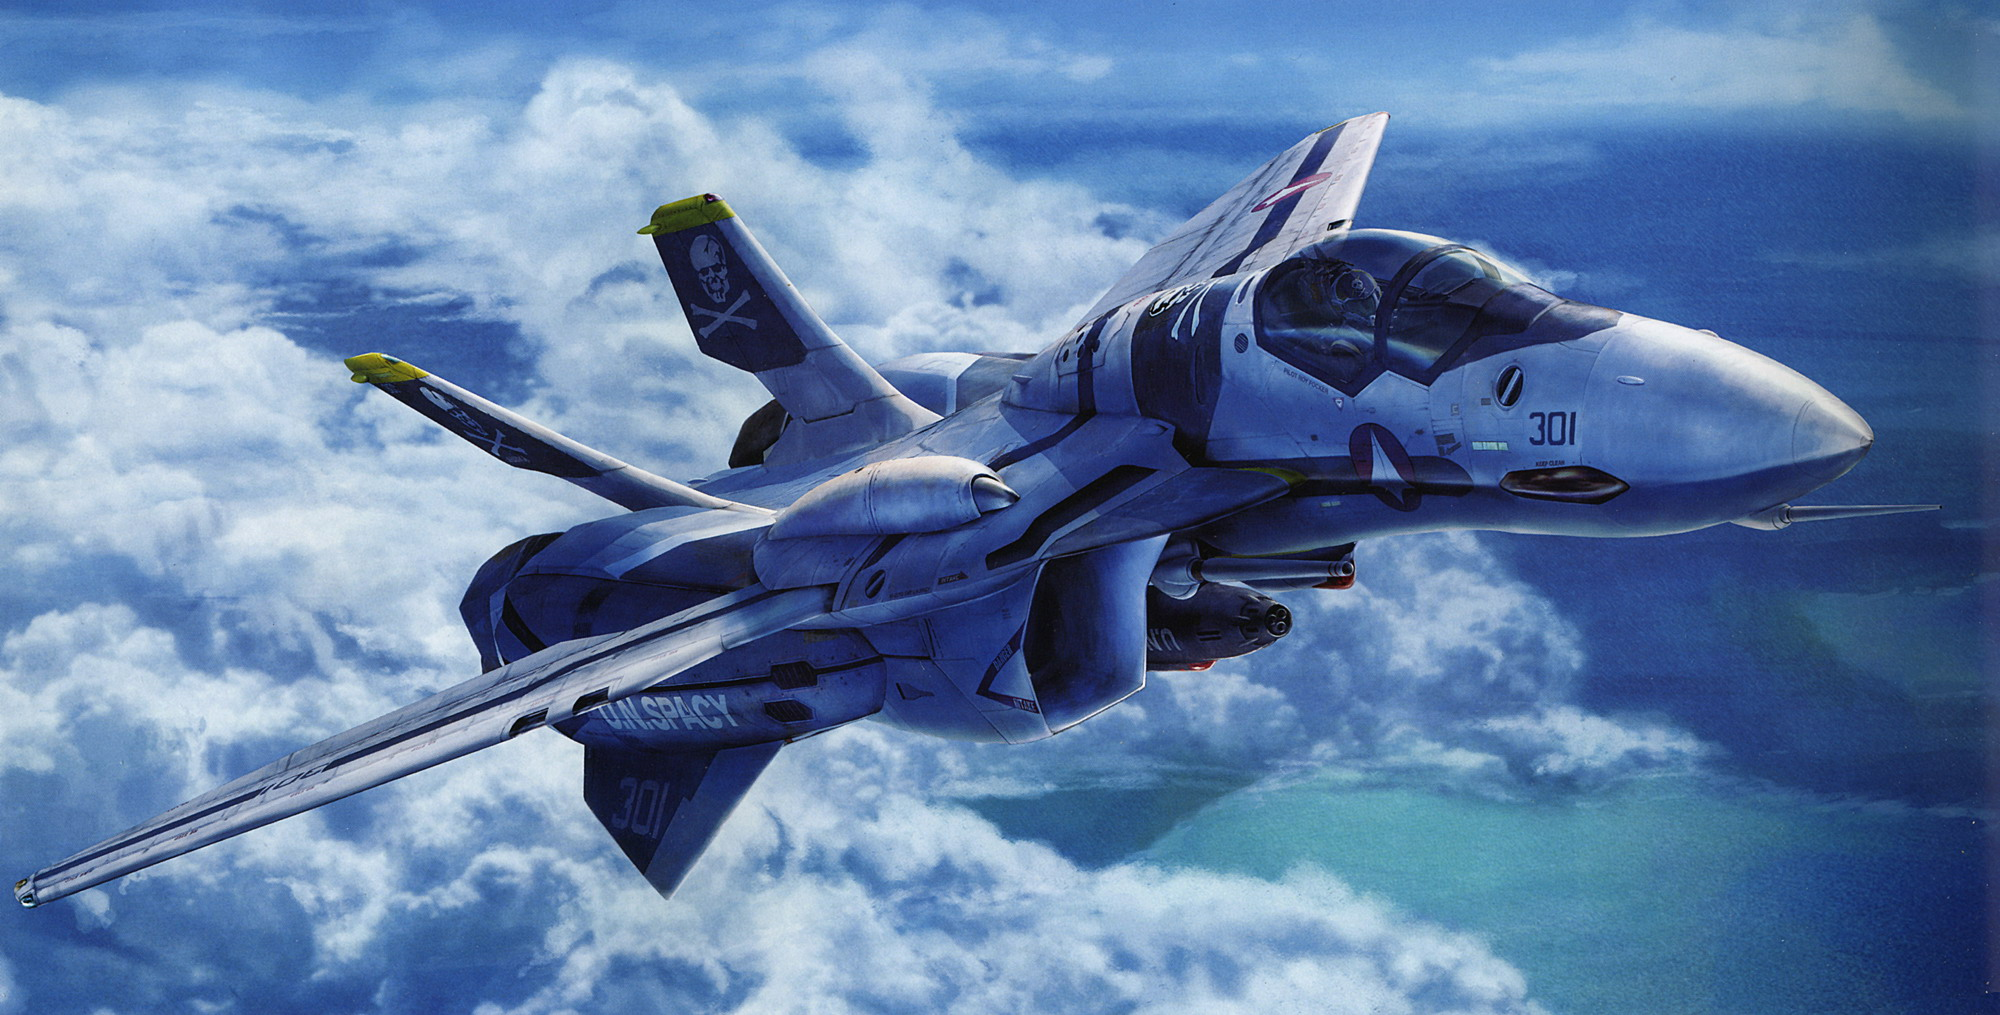 ACE  BAT game jet airplane aircraft fighter plane military g together with Art 101 I division landing soldiers airborne 101st military besides 2009 Bronto VAZ 21214 070 Lynx 1 lada 4x4 russian military f furthermore CC 1945 06 02 further Gammabasenm. on small military